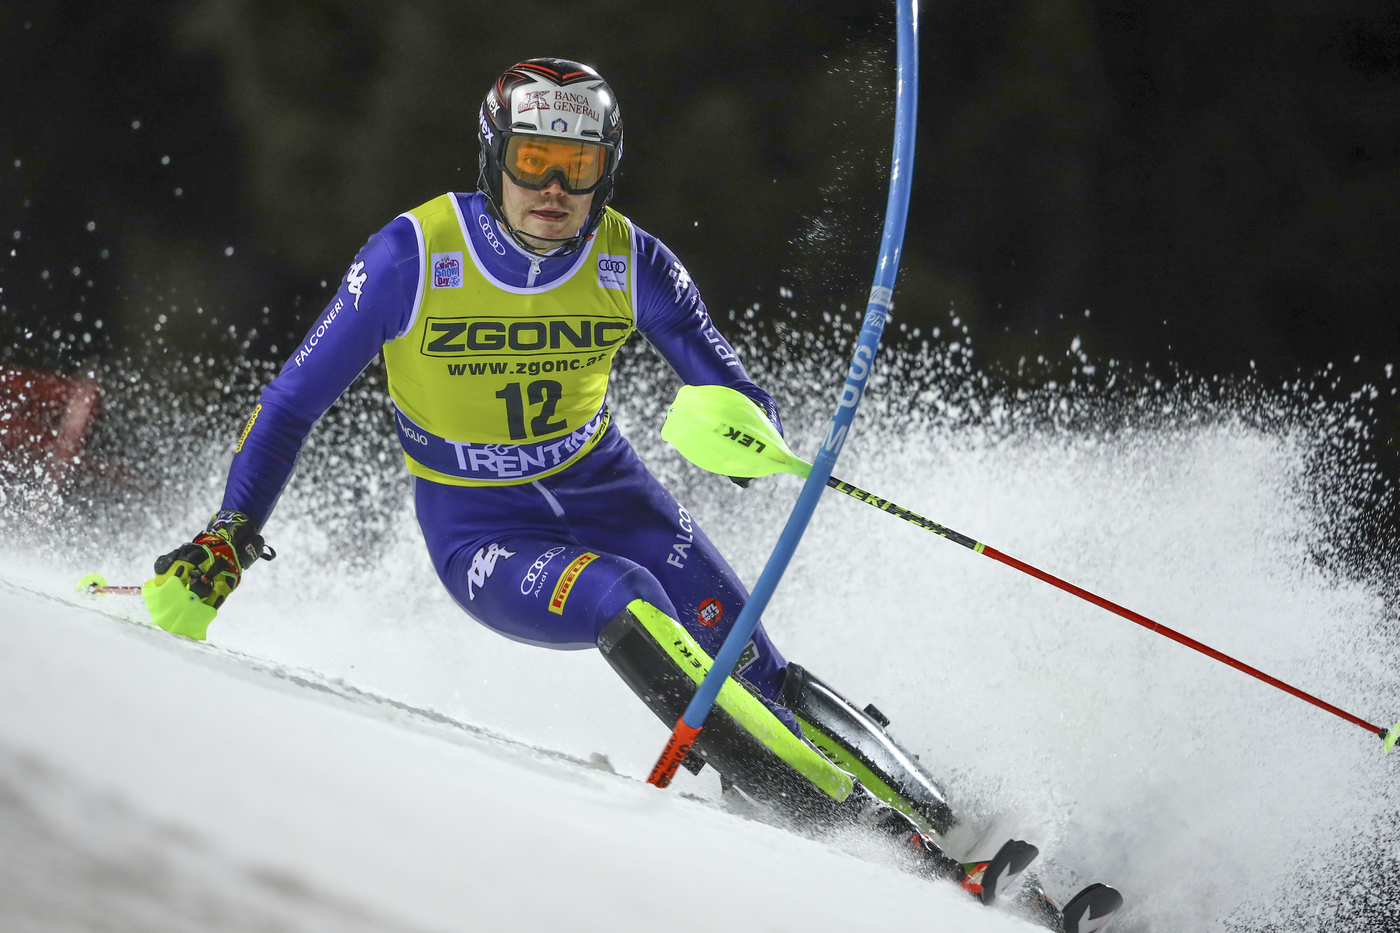 Sci alpino, risultati e classifica gigante femminile Kronplatz 2021: vince Worley, podio Bassino